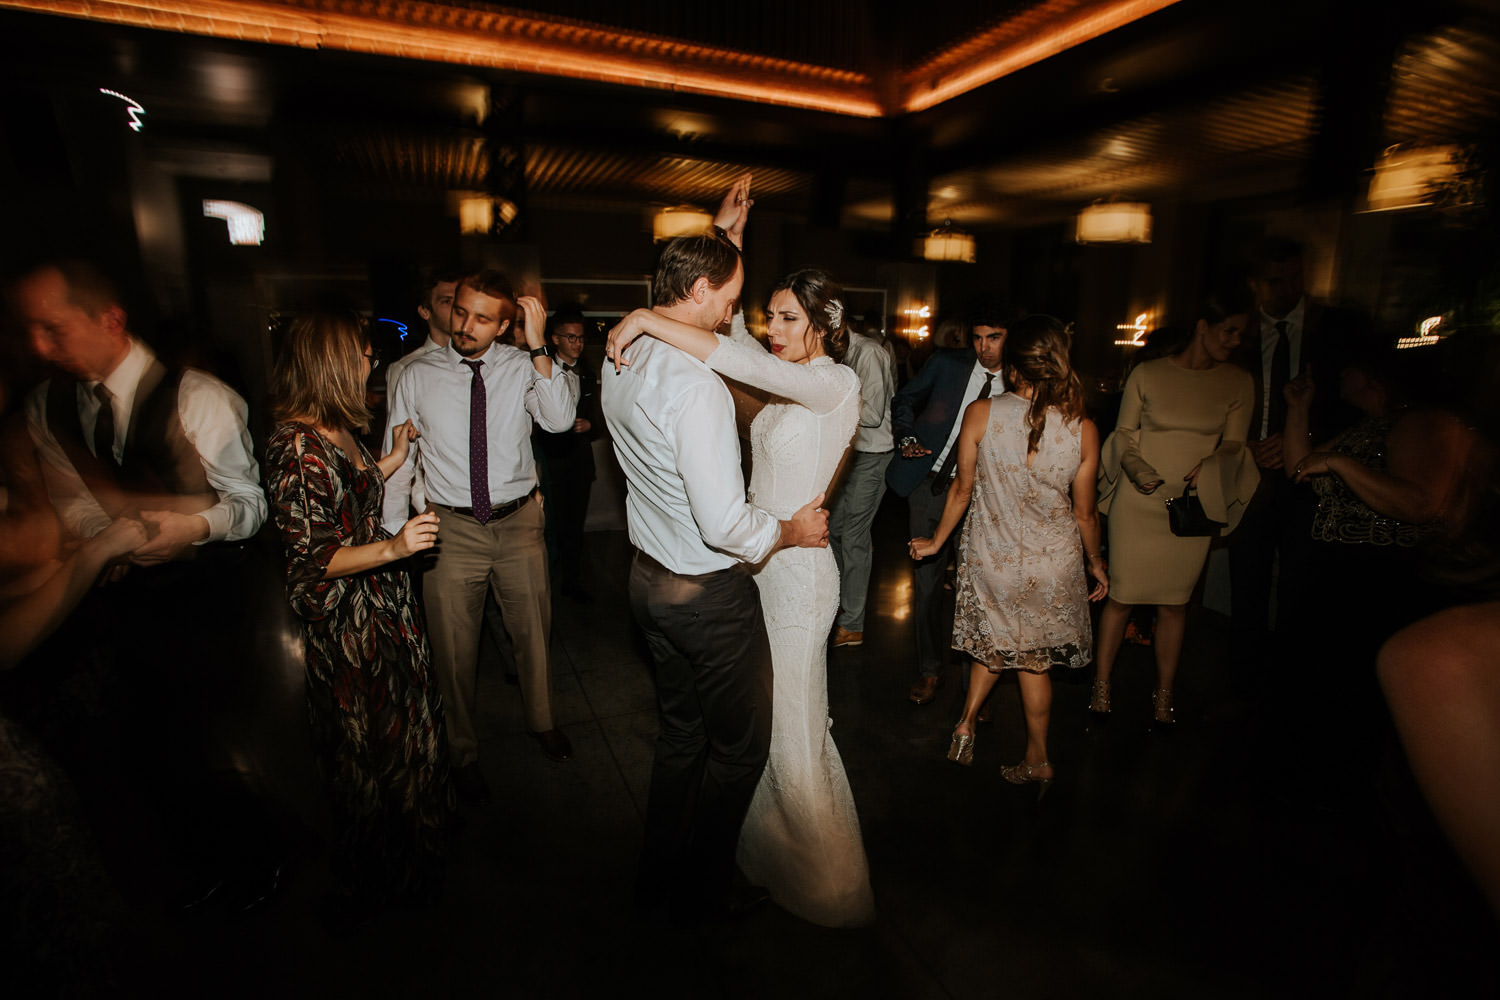 bride and groom dancing together on their wedding day at Hotel Gray in Chicago